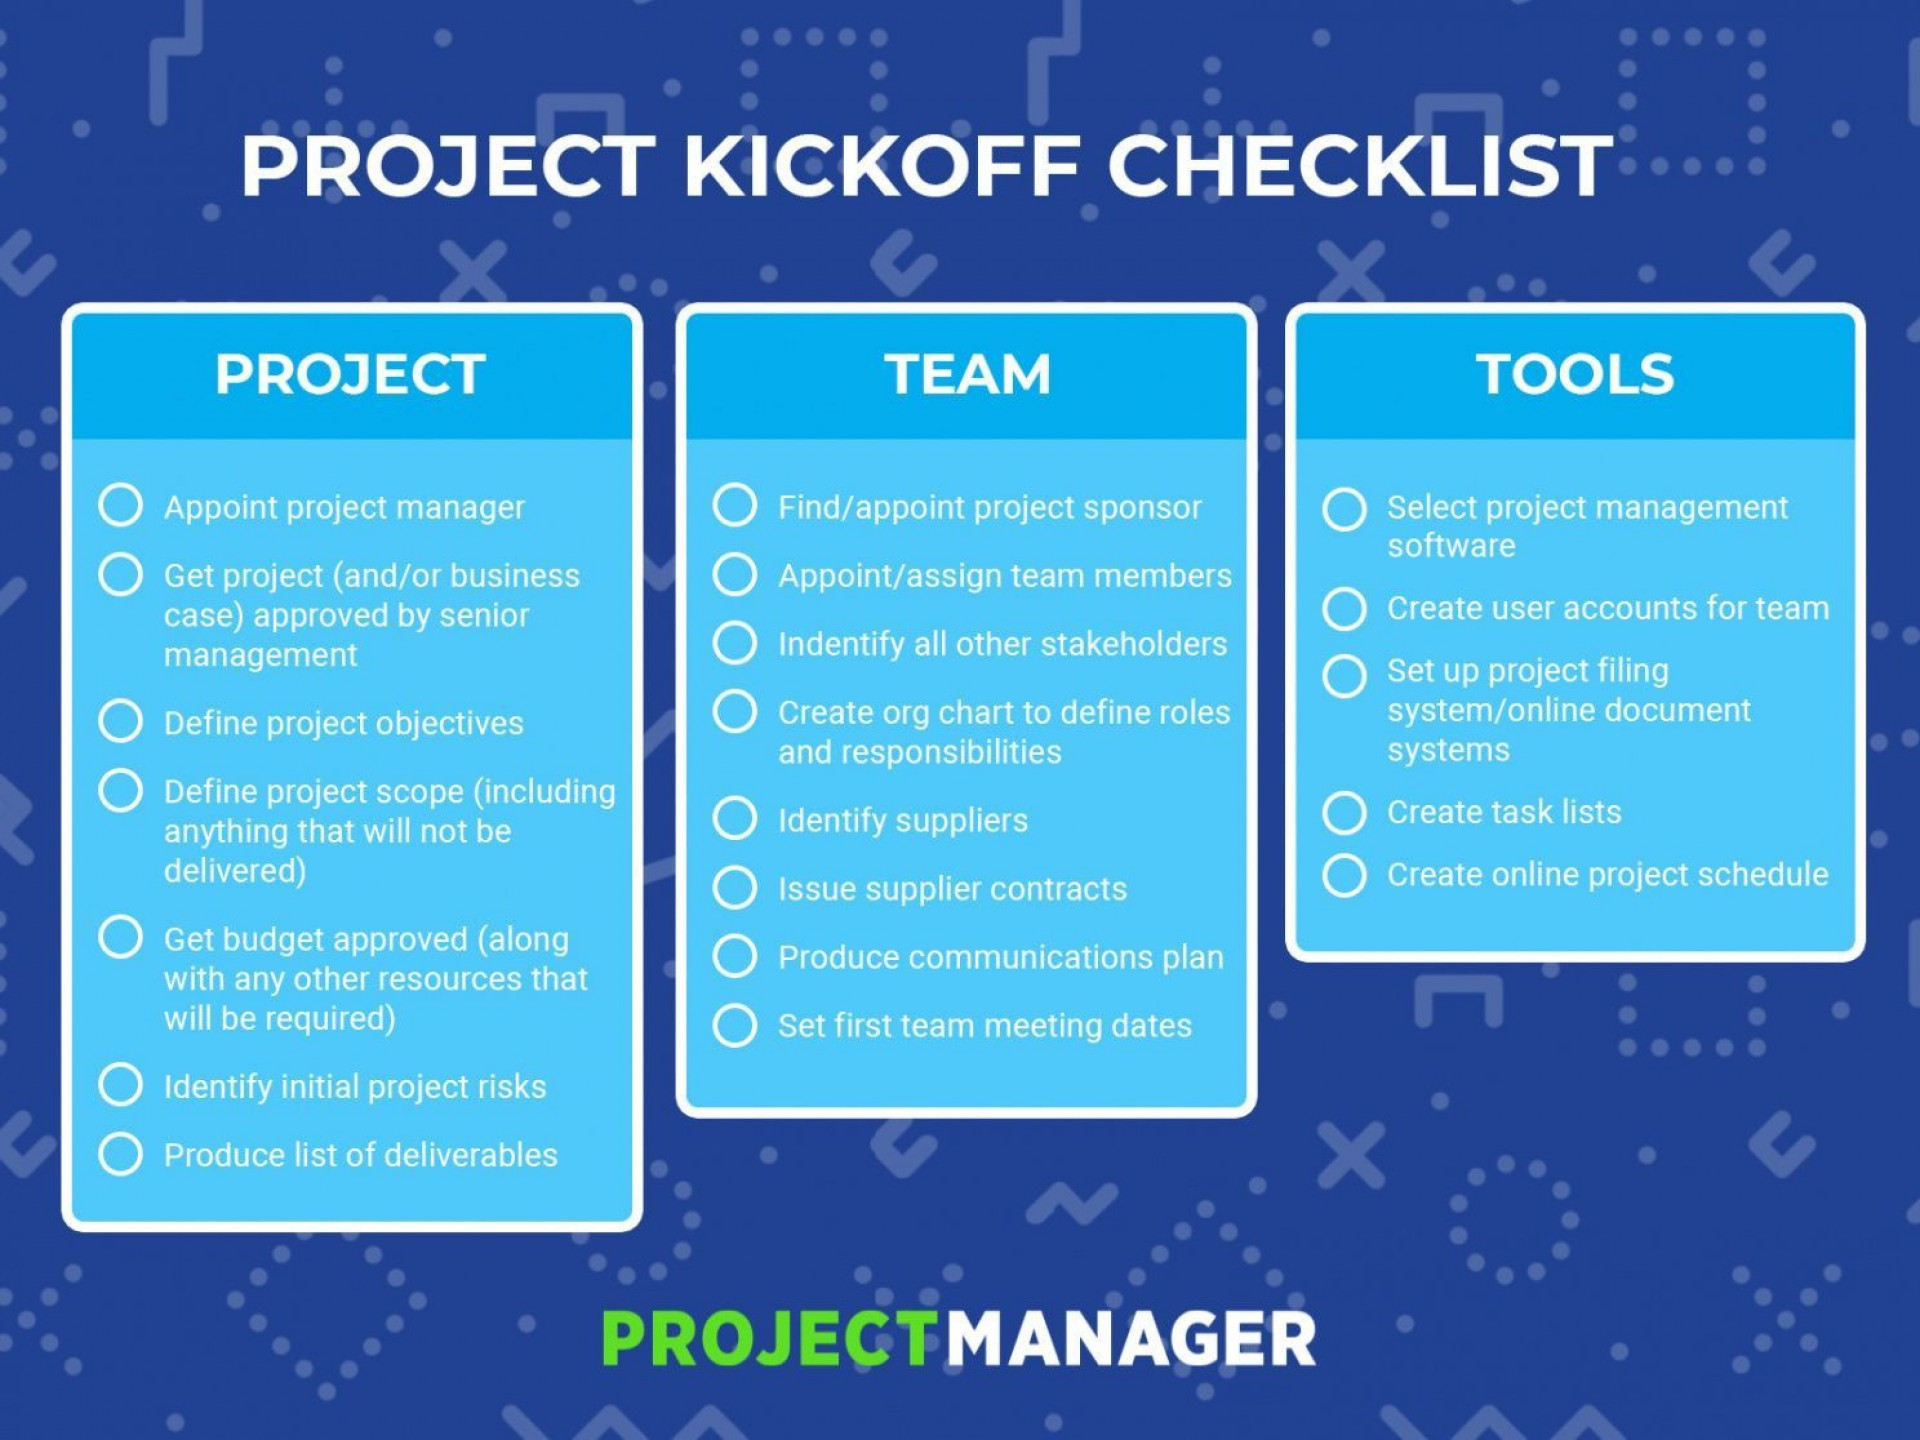 002 Unforgettable Project Kickoff Meeting Agenda Example  Management Template1920